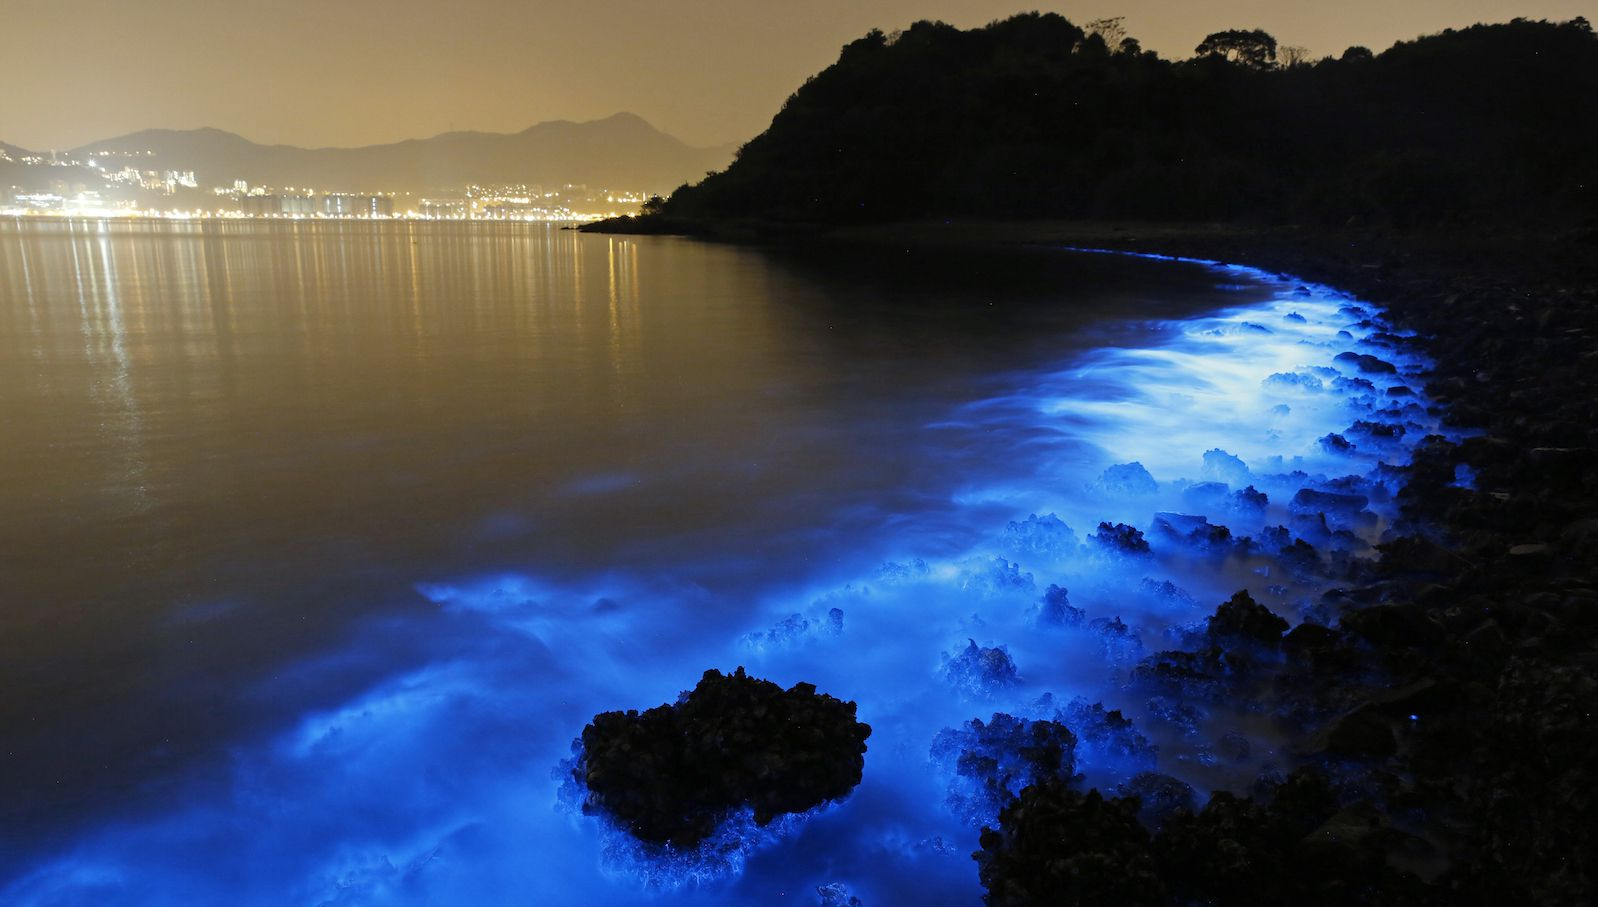 This Thursday, Jan. 22, 2015 photo made with a long exposure shows the glow from a Noctiluca scintillans algal bloom along the seashore in Hong Kong. The luminescence, also called Sea Sparkle, is triggered by farm pollution that can be devastating to marine life and local fisheries, according to University of Georgia oceanographer Samantha Joye. Noctiluca itself does not produce neurotoxins like other similar organisms do. But its role as both prey and predator tends can eventually magnify the accumulation of toxins in the food chain, according to R. Eugene Turner at Louisiana State University. (AP Photo/Kin Cheung